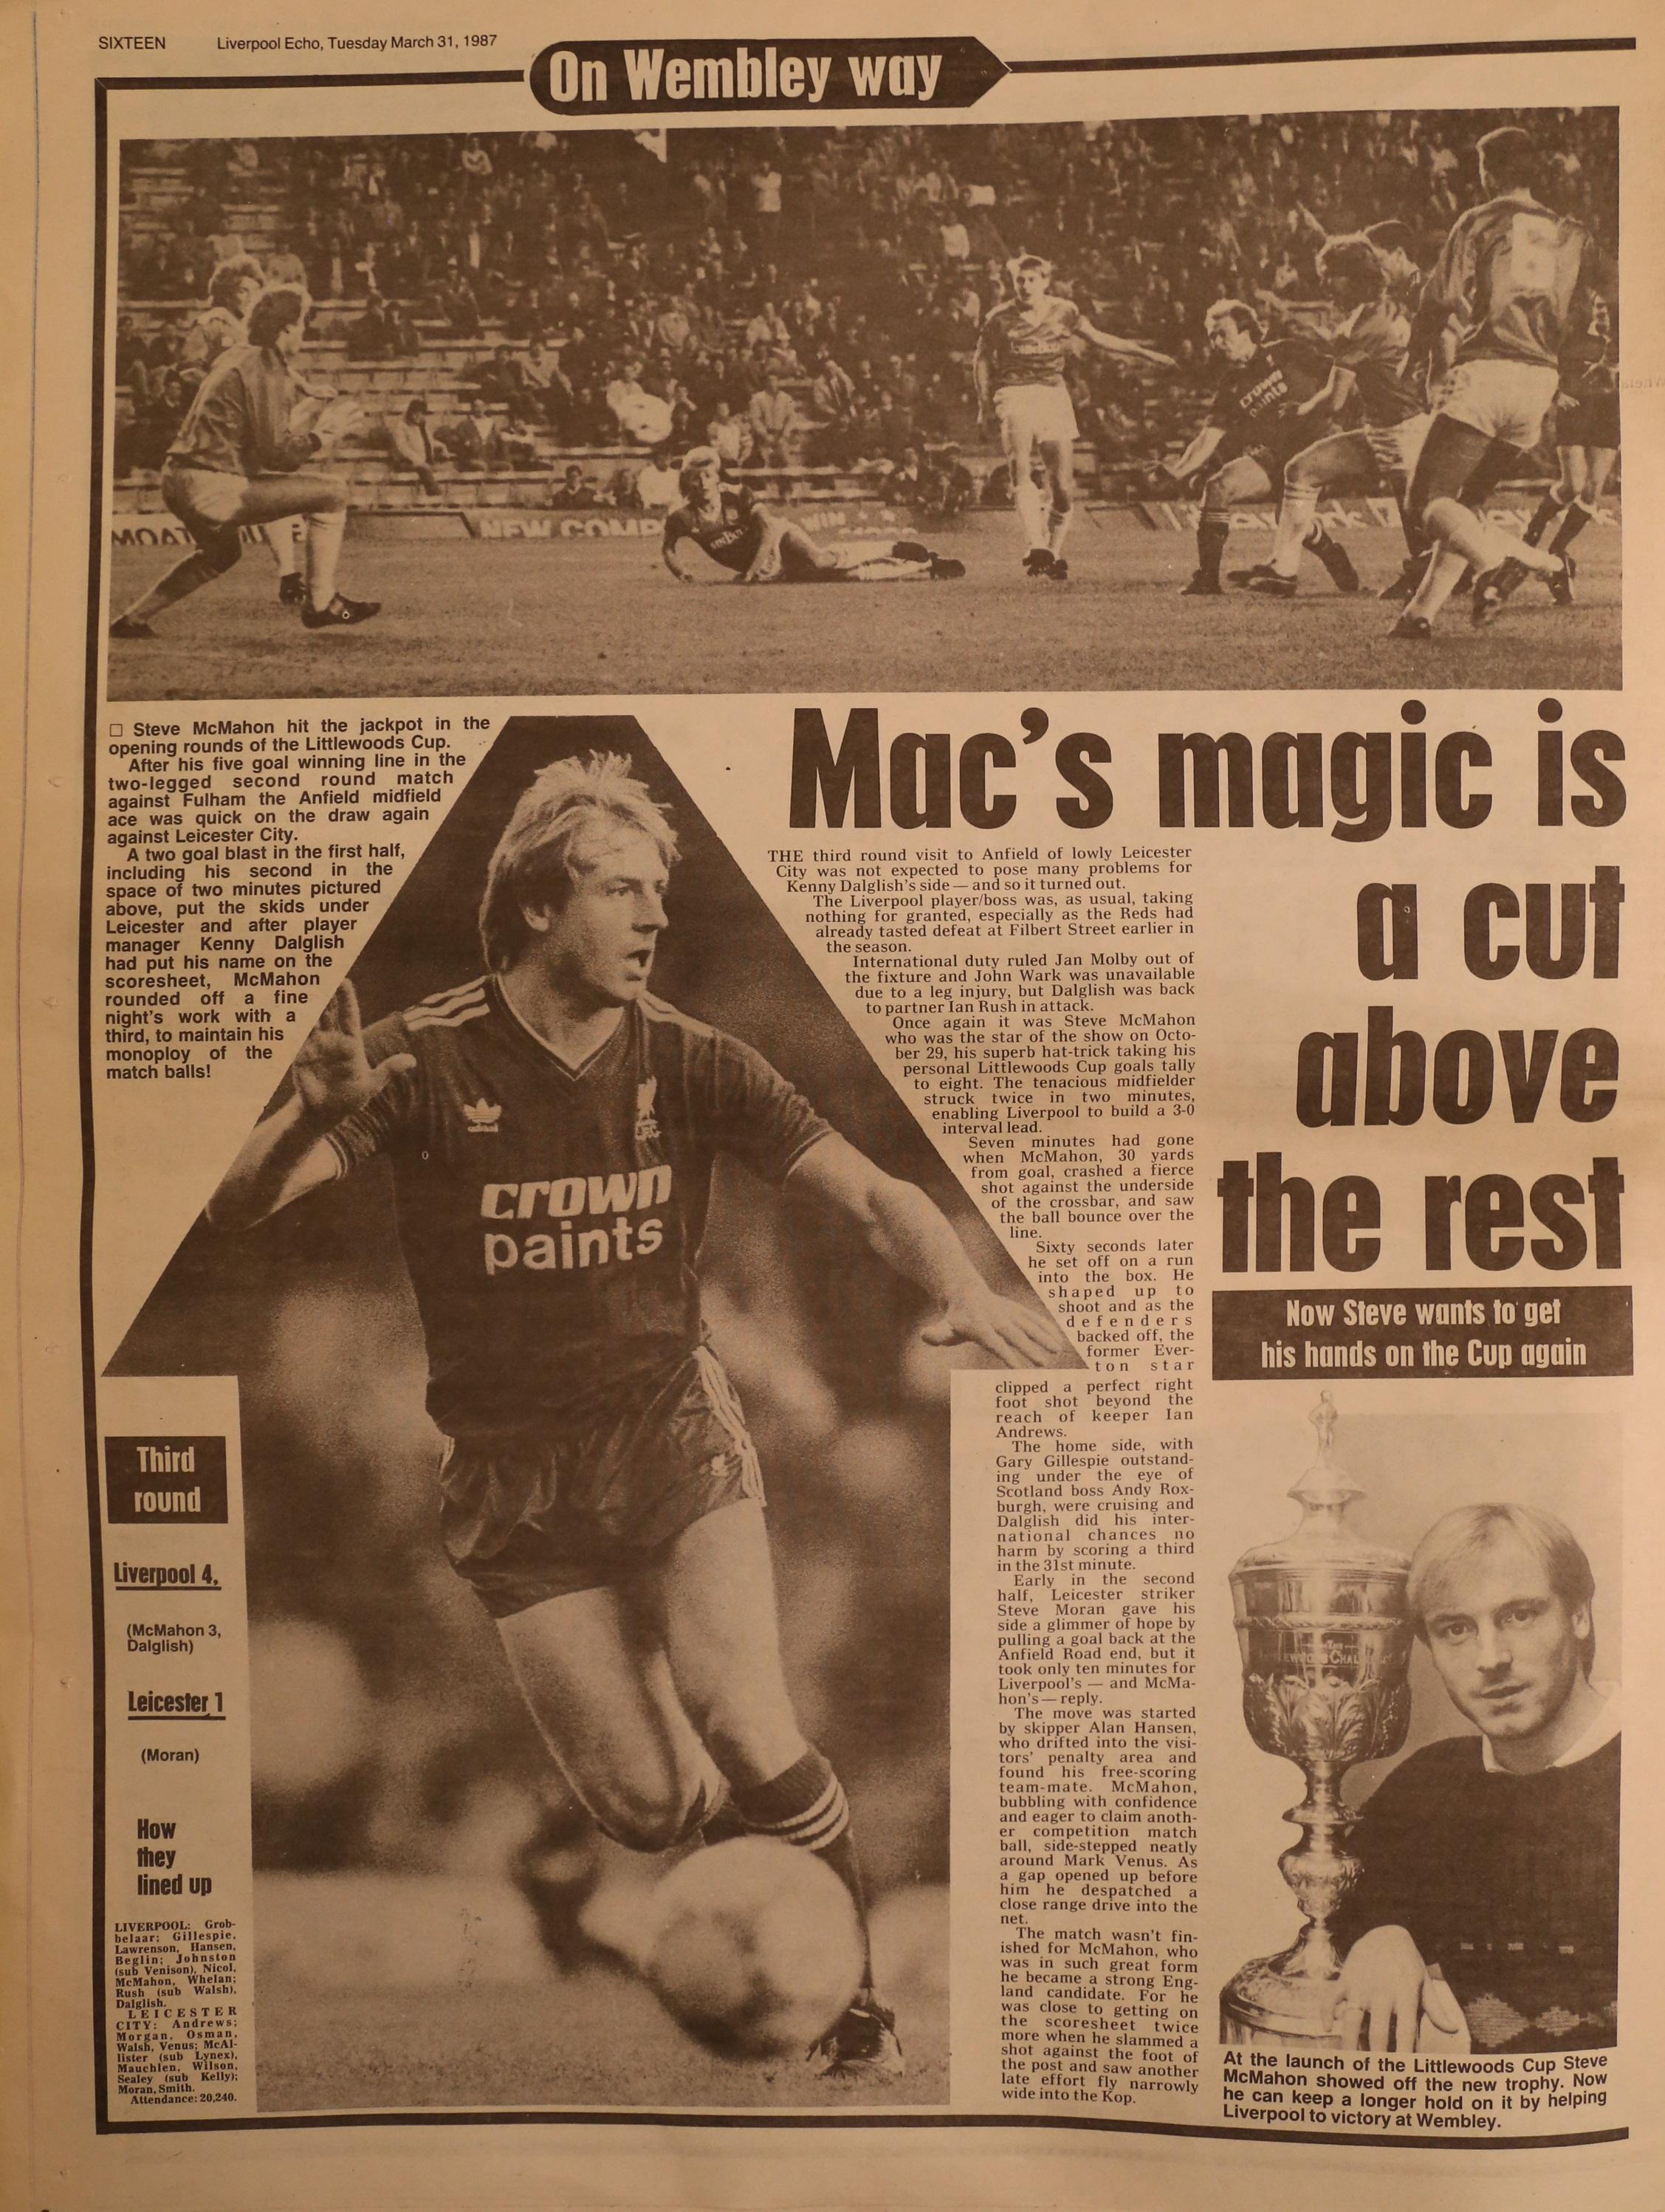 Mac's magic is above the rest - 29 October 1986